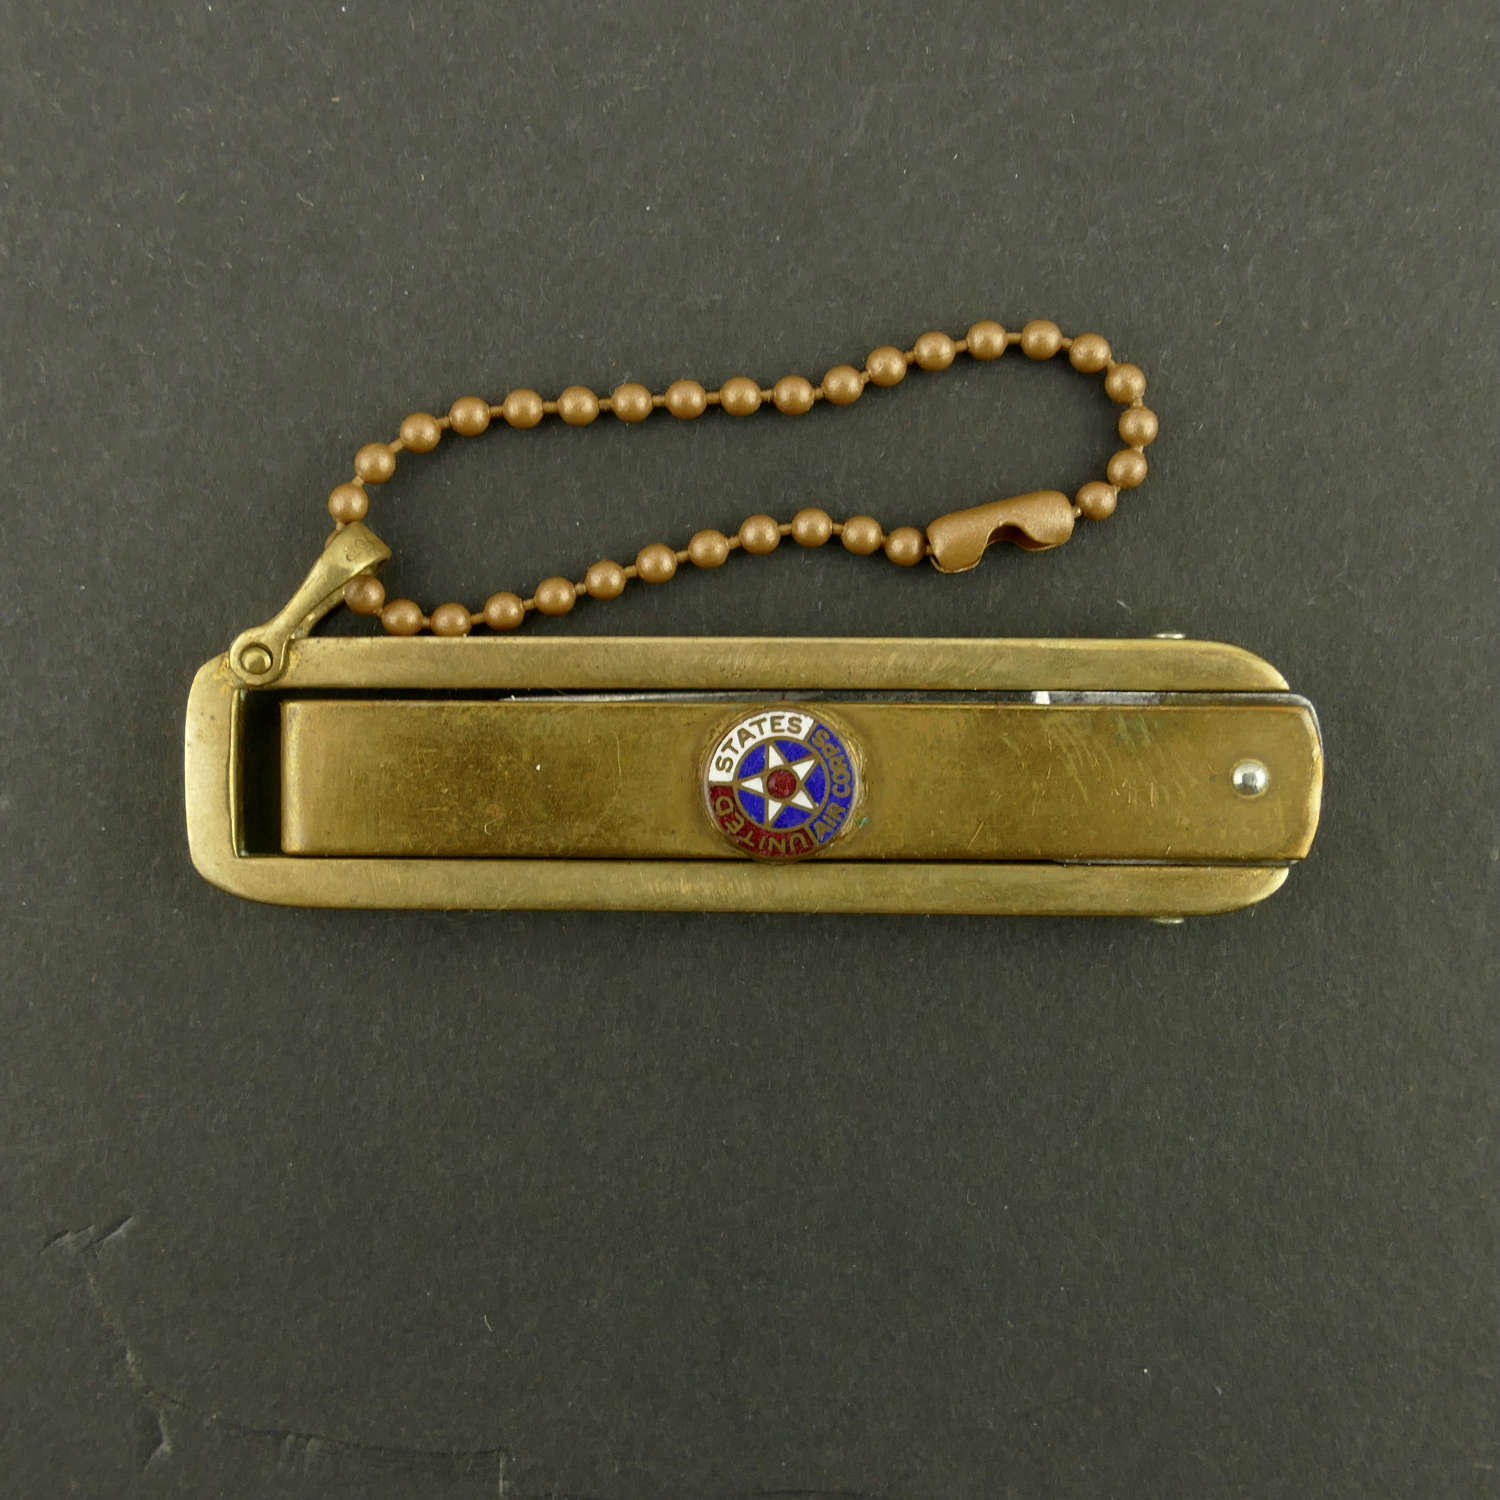 US Army Air Corps penknife